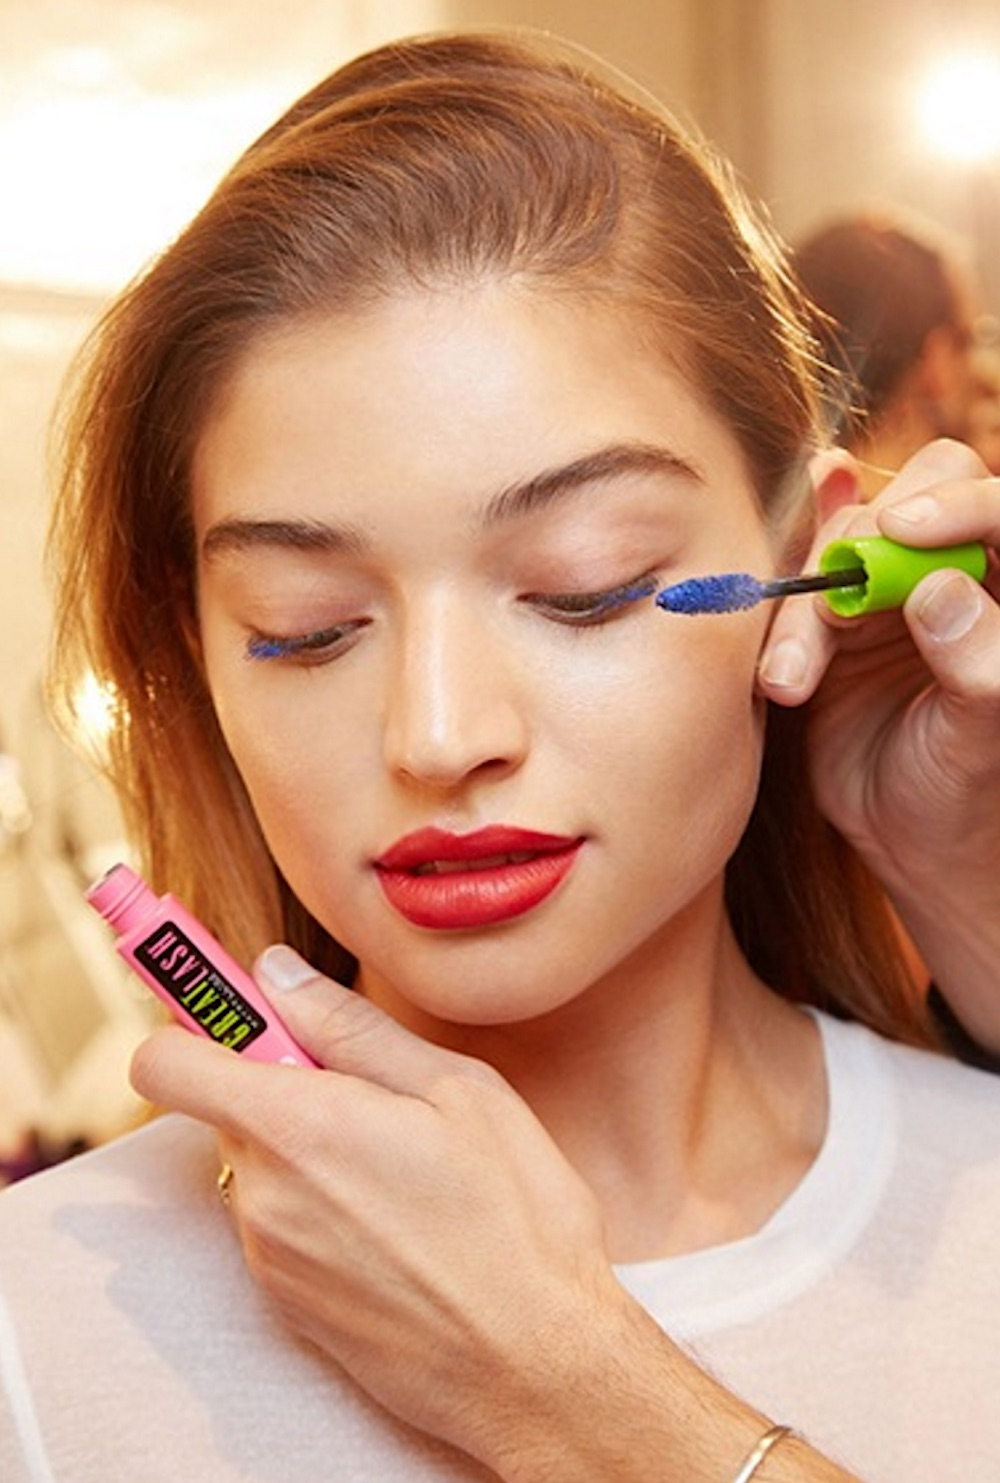 1e0d1d1eff4 OMG: Maybelline is relaunching their cult classic Great Lash Royal Blue  mascara - HelloGiggles